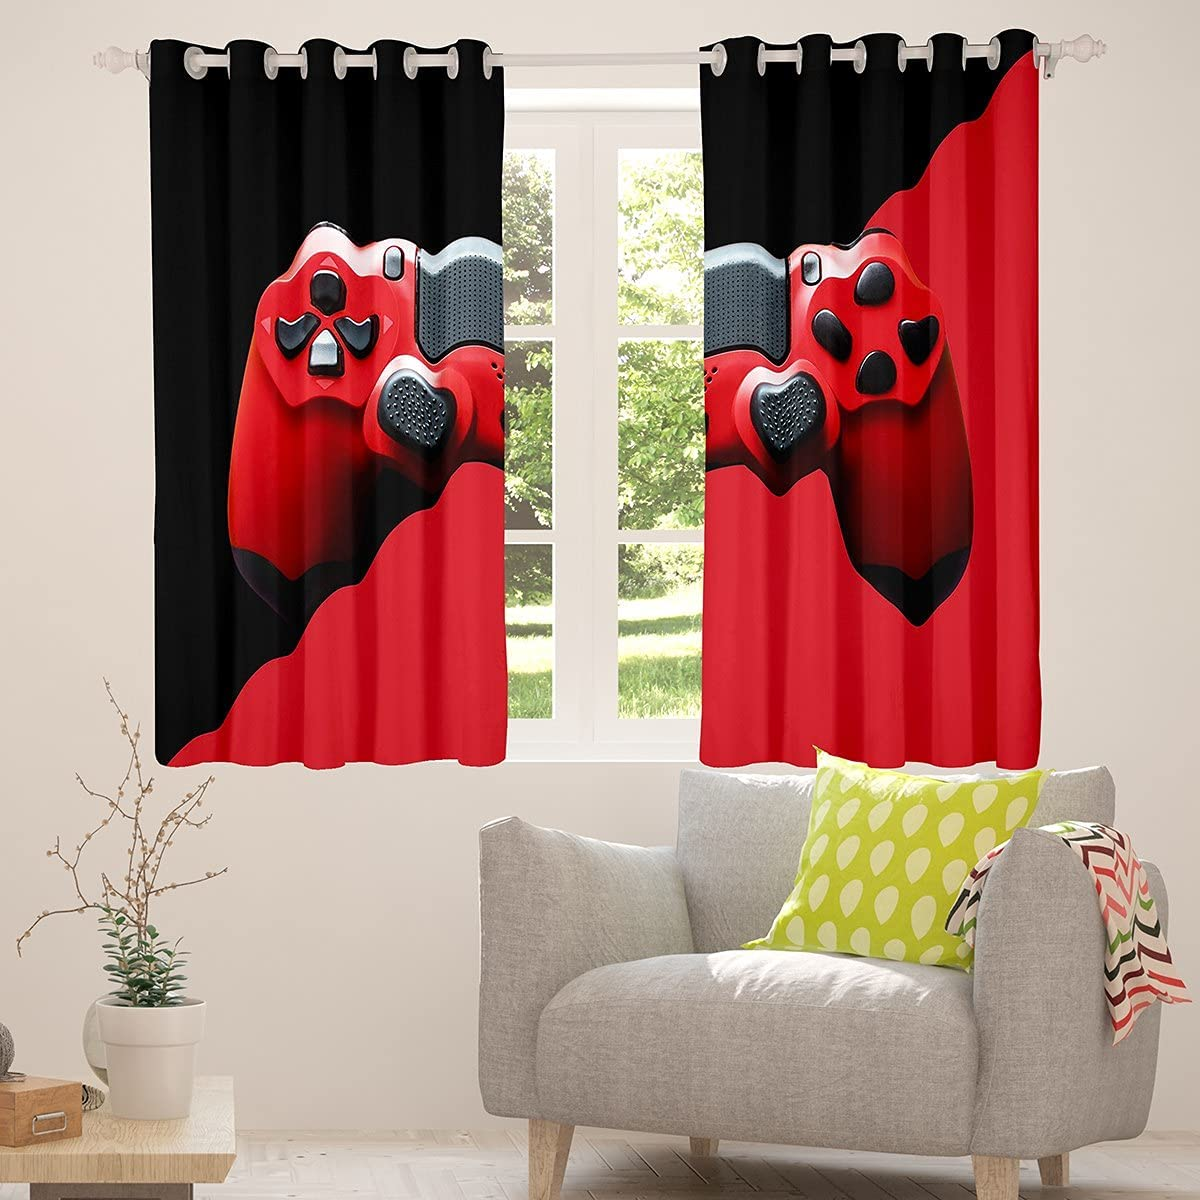 Erosebridal Teens Gamepad Curtains for Bedroom, Video Game Window Curtains Kids Boys Player Gaming Window Drapes Modern Gamer Window Treatments Curtains Living Room Decor, Red Black, 42